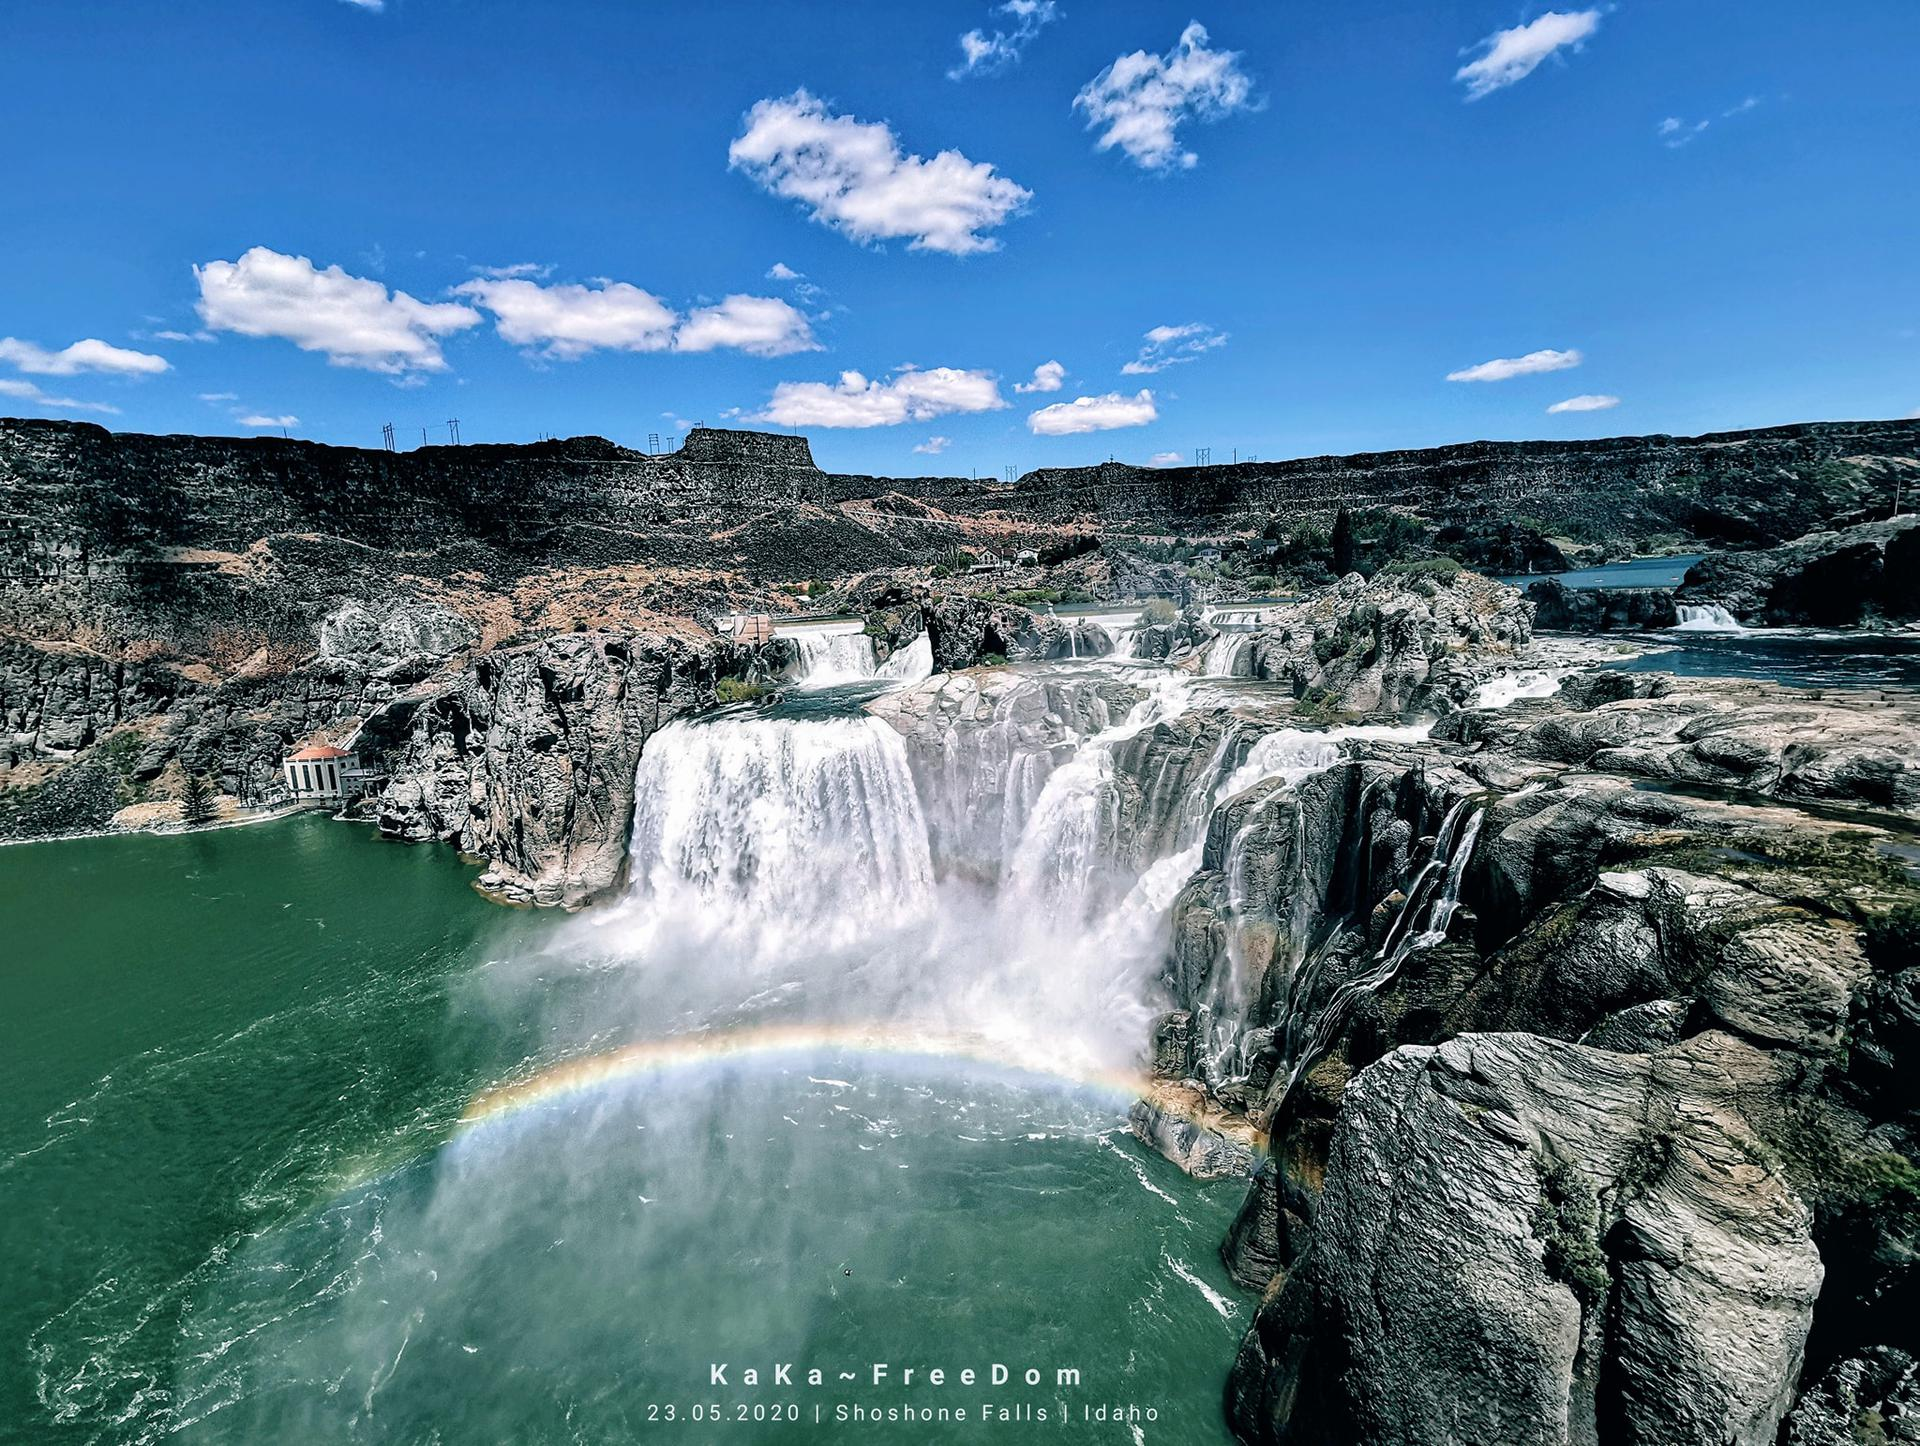 Shoshone Falls in Idaho (USA)